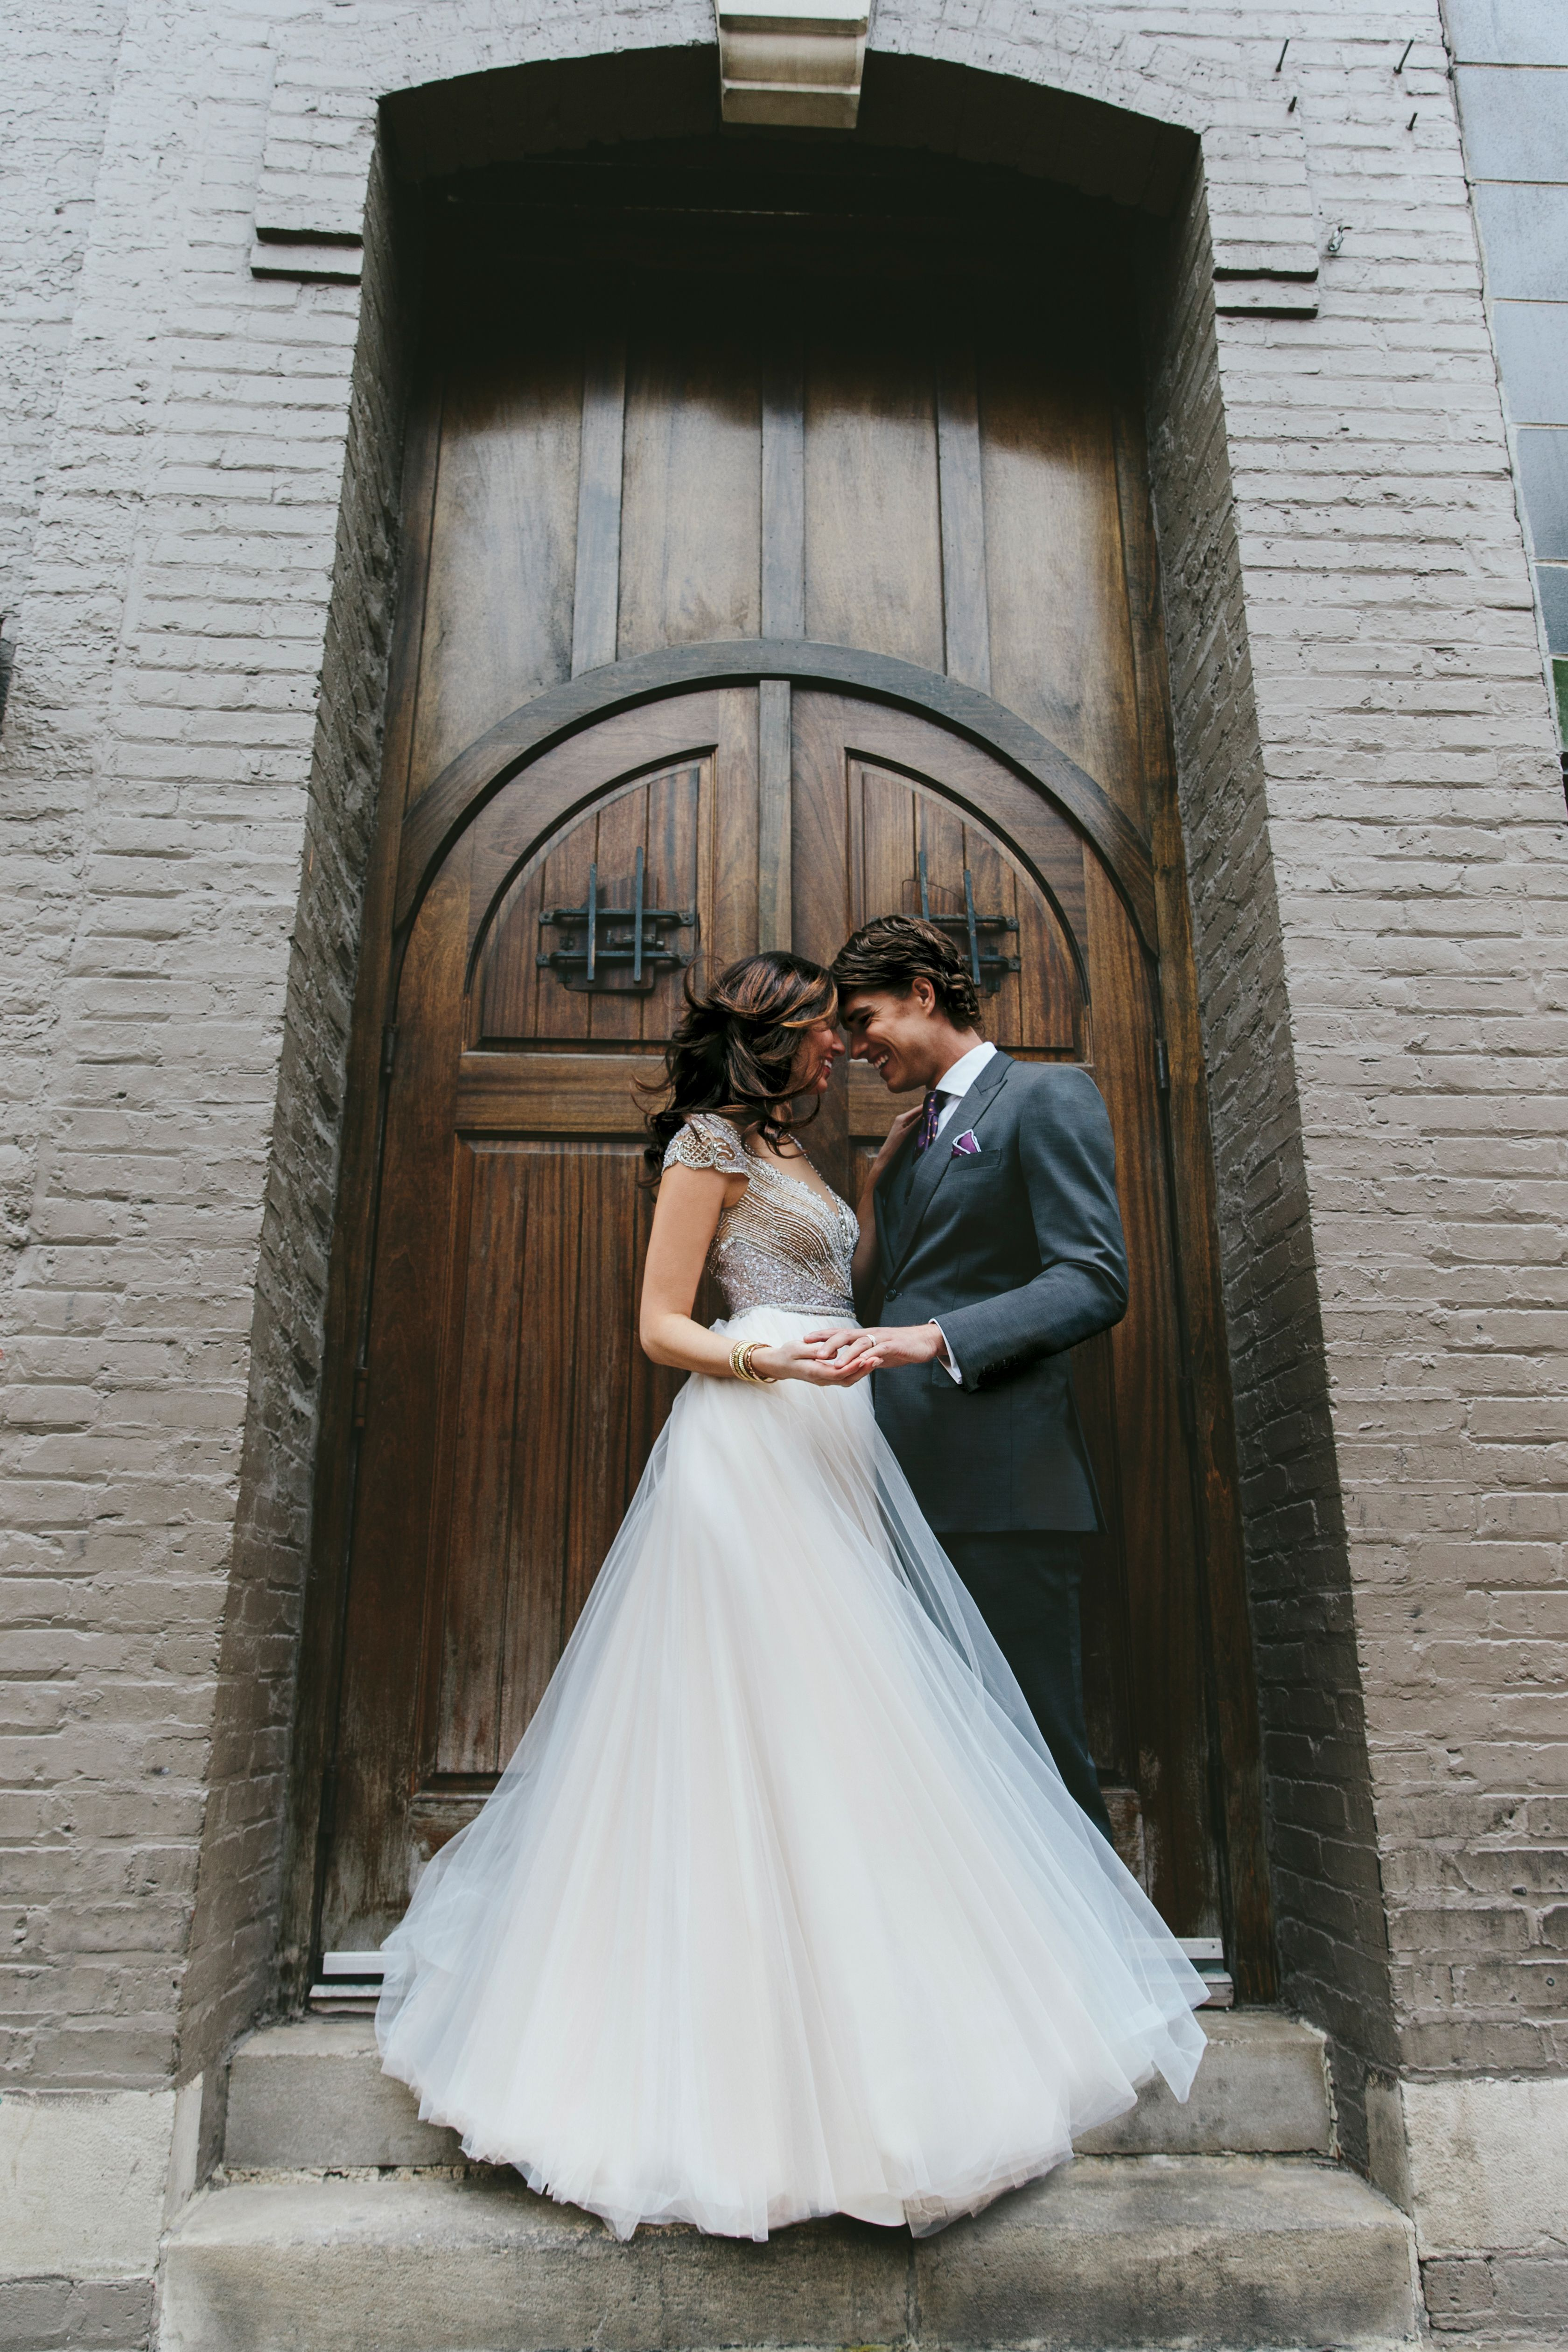 ChicagoStyle Weddings: Your essential wedding planning resource. Photo: Native Weddings.